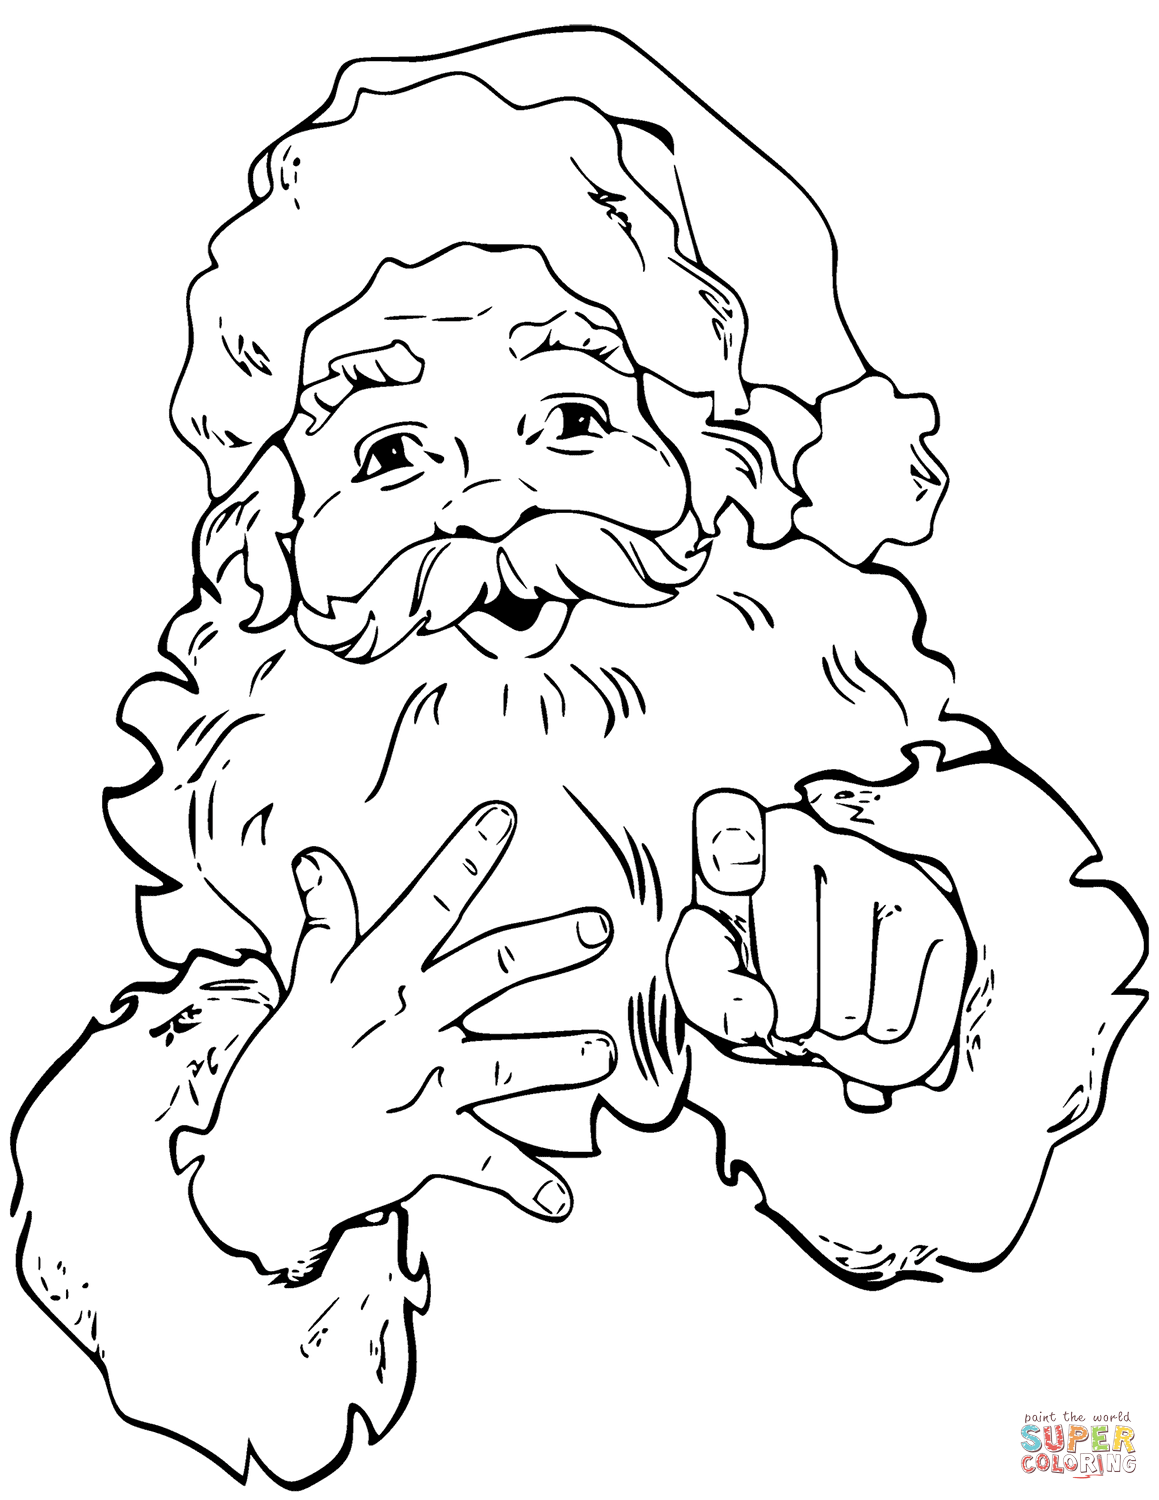 Cute Santa Claus Coloring Pages With Free